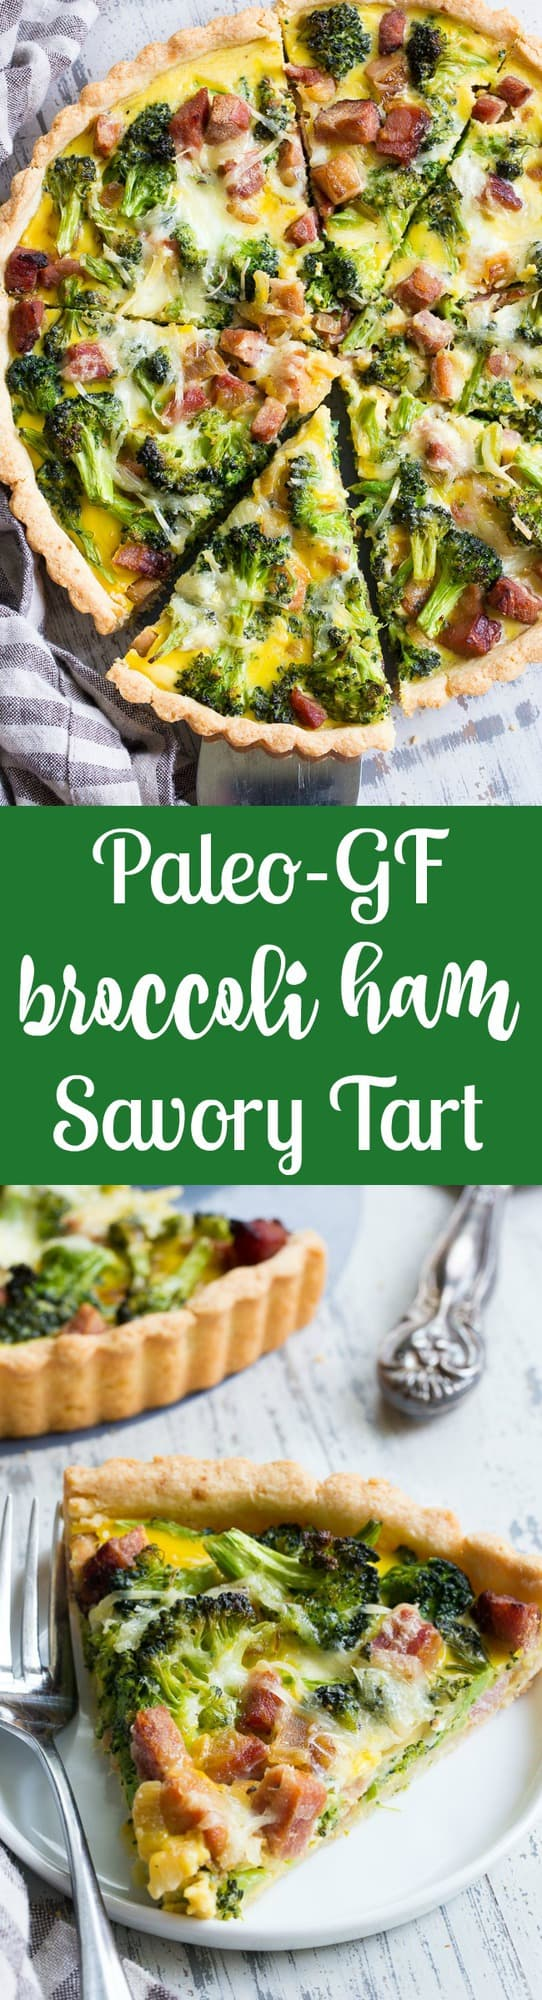 This grain free and paleo savory tart begins with the perfect paleo crust loaded with chopped broccoli and sugar-free ham, plus a creamy egg mixture with a dairy-free option.  This amazing savory tart is a family favorite, kid approved and perfect for brunch or as a make ahead breakfast!